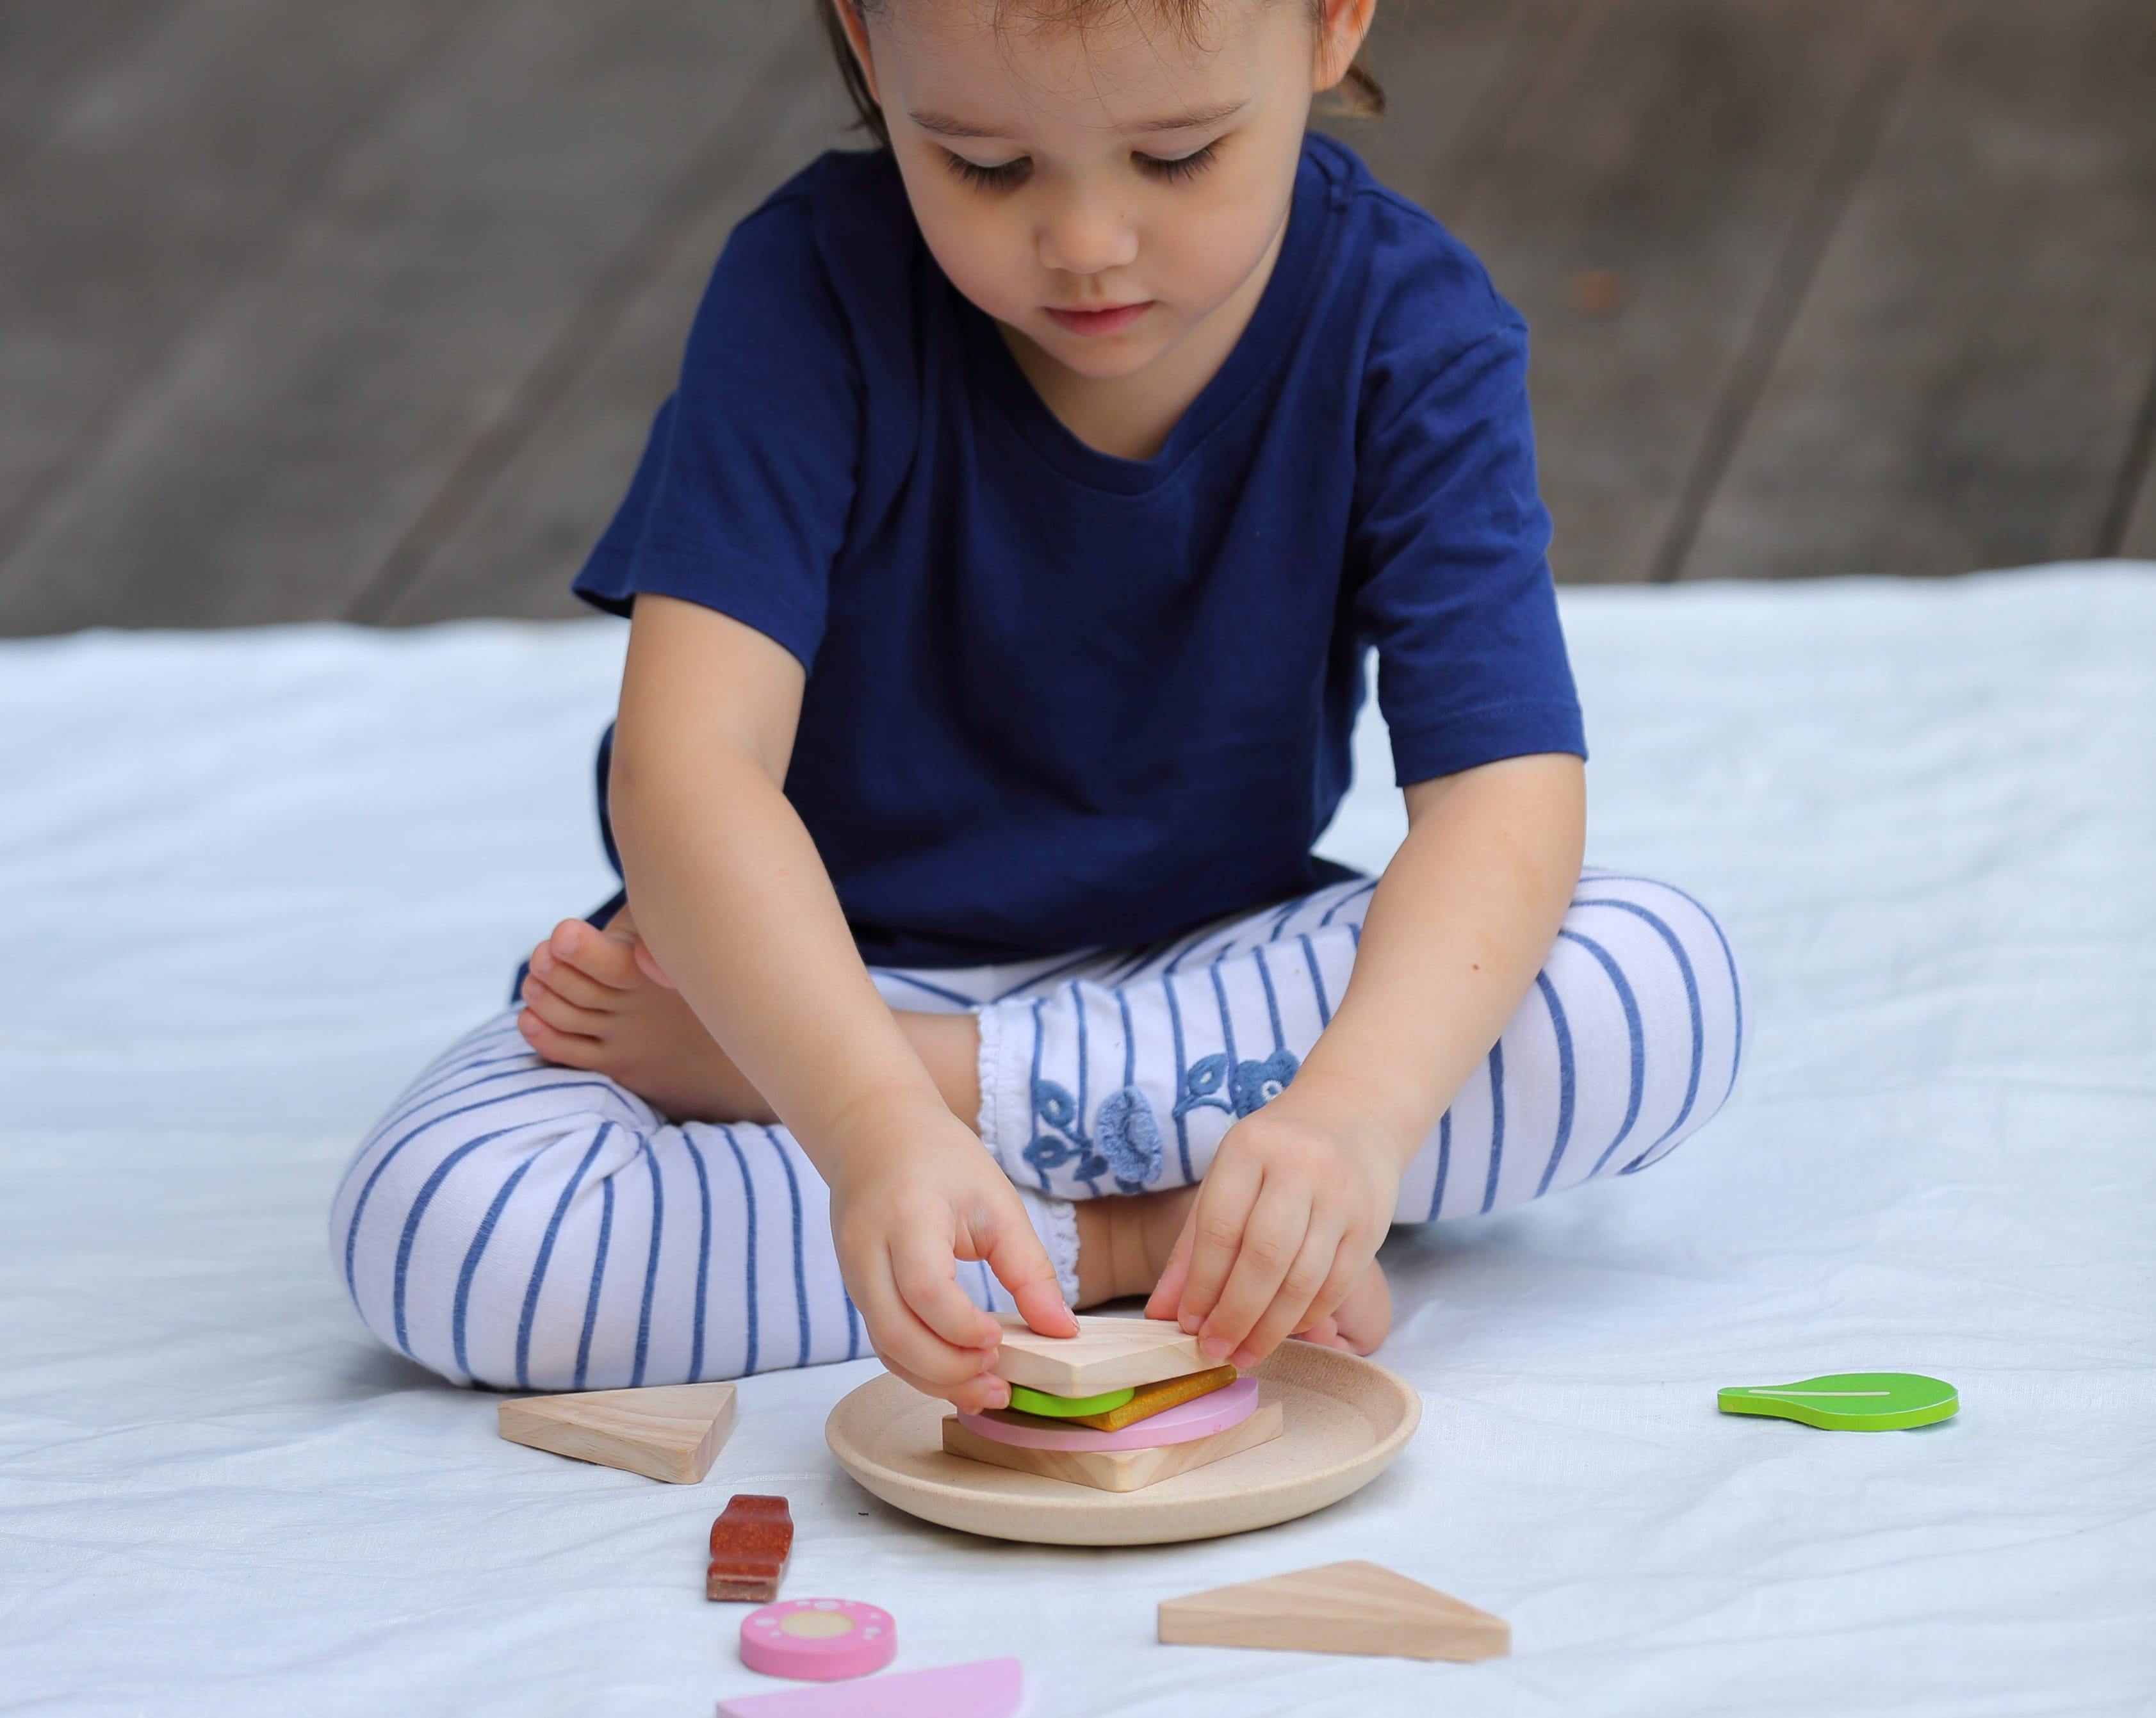 3612_PlanToys_SANDWICH_Pretend_Play_Imagination_Creative_Language_and_Communications_Social_Coordination_Emotion_2yrs_Wooden_toys_Education_toys_Safety_Toys_Non-toxic_1.jpg